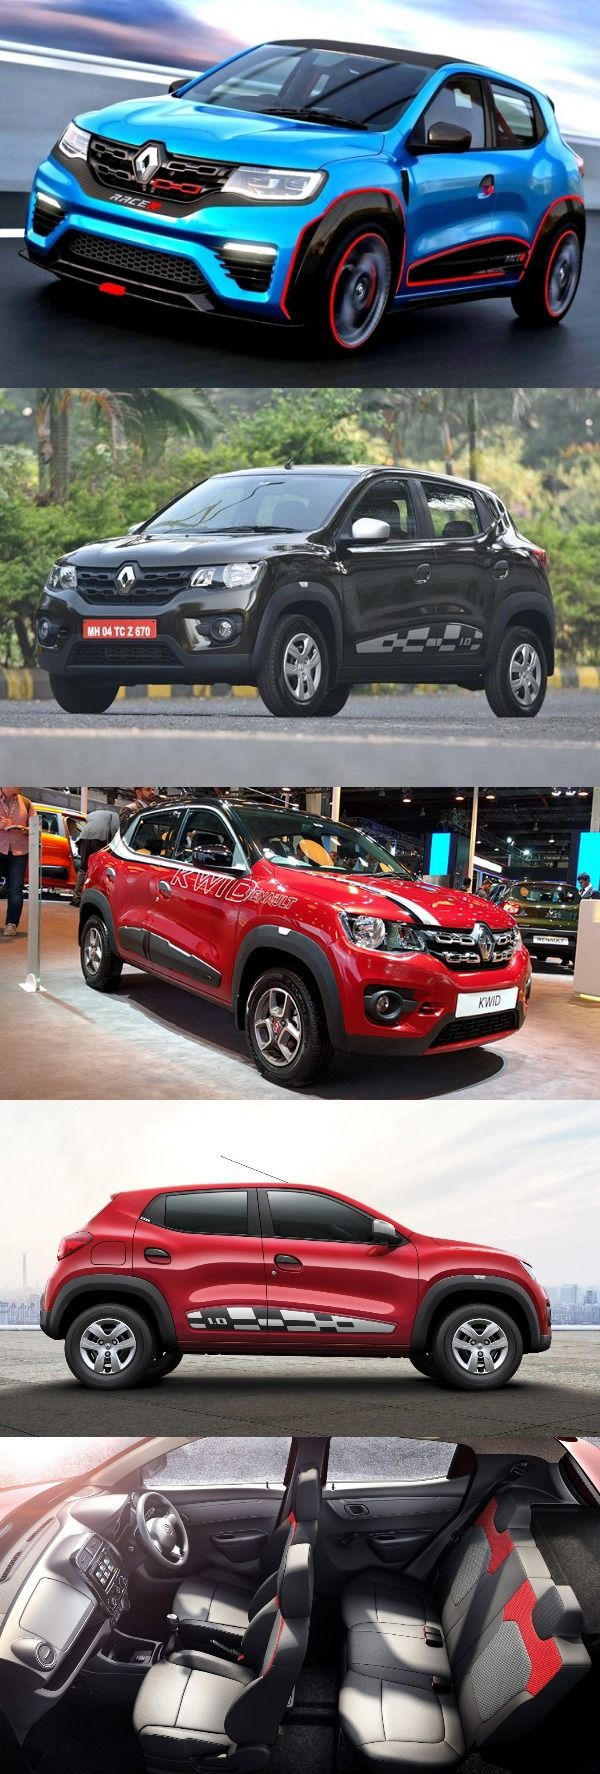 Renault Kwid EasyR AMT Version Launched in India; Priced